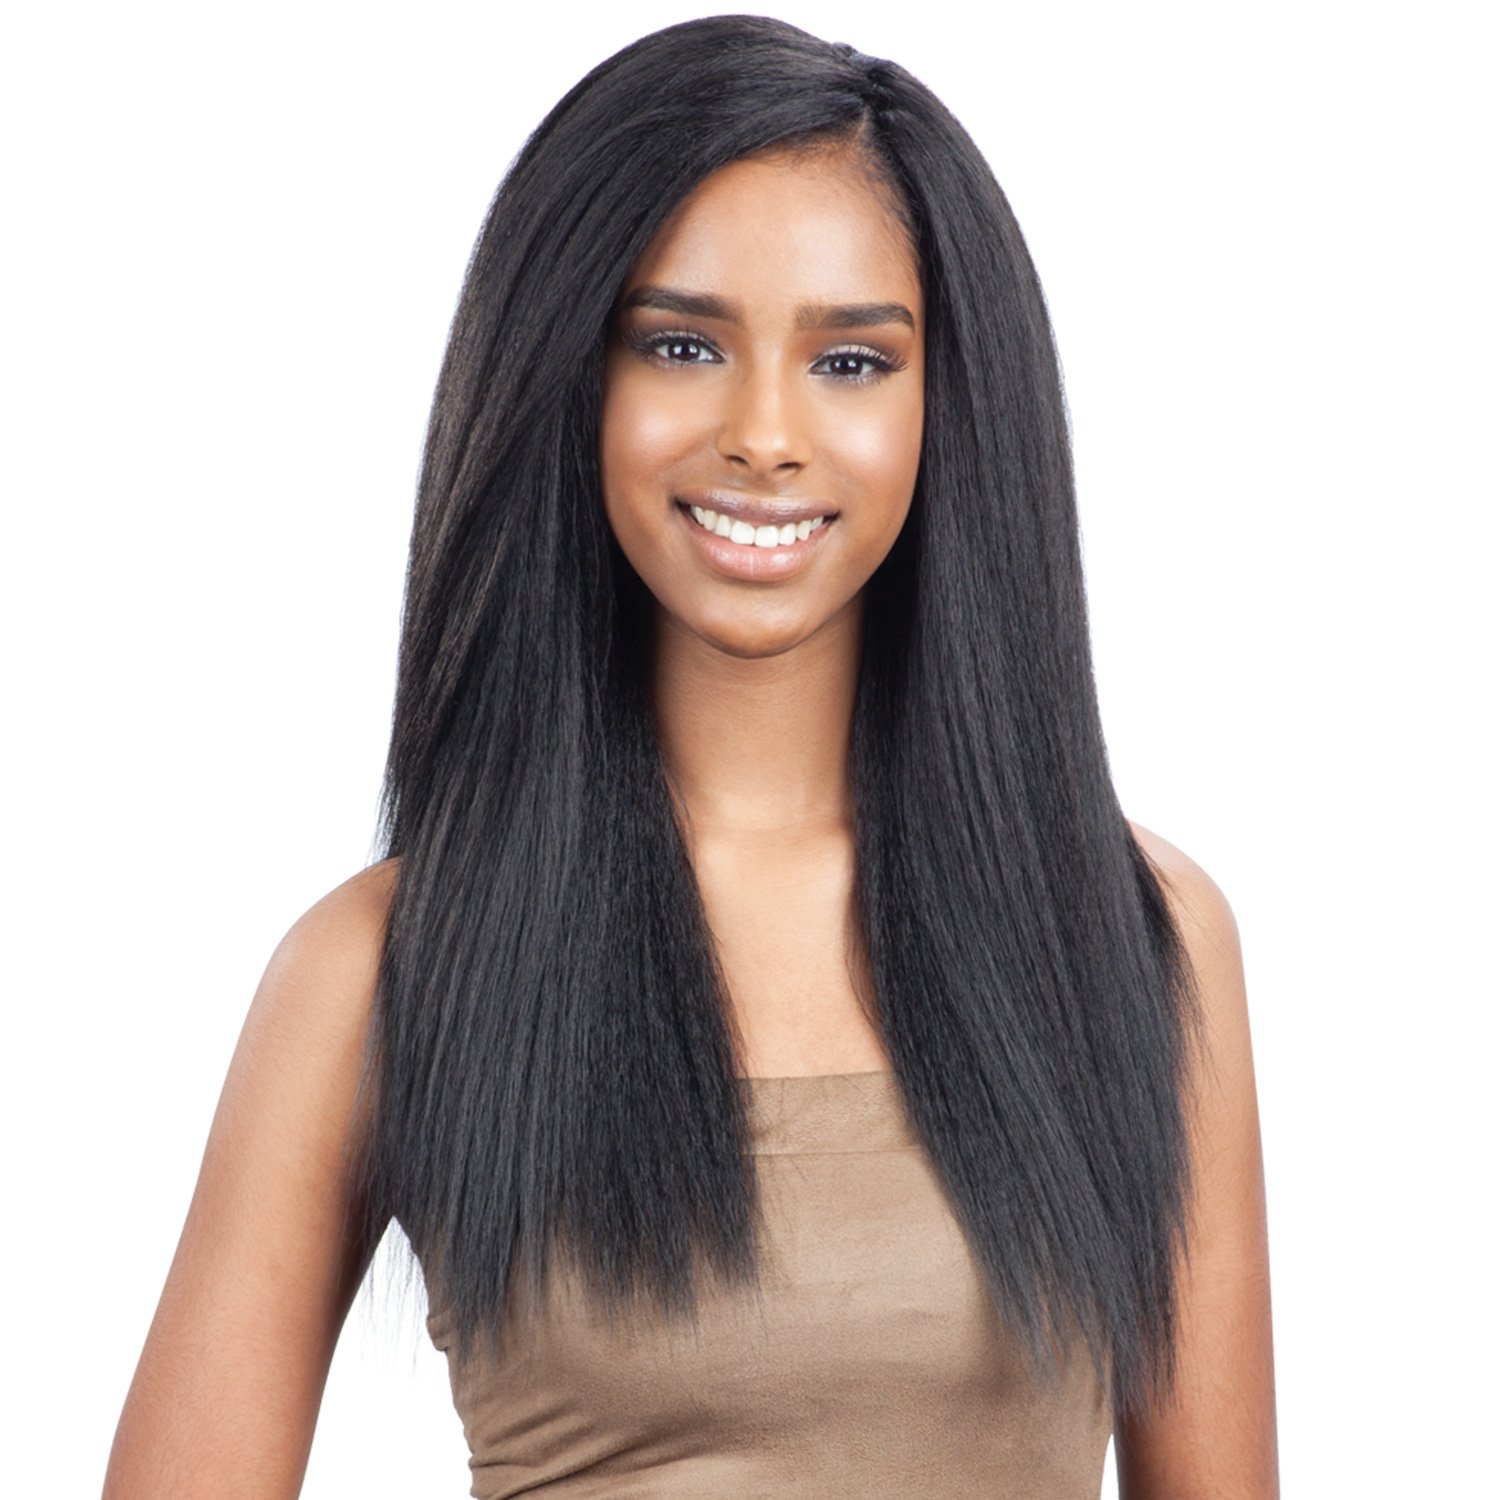 Amazon.com : FreeTress Synthetic Hair Braids 3X Pre-loop ...